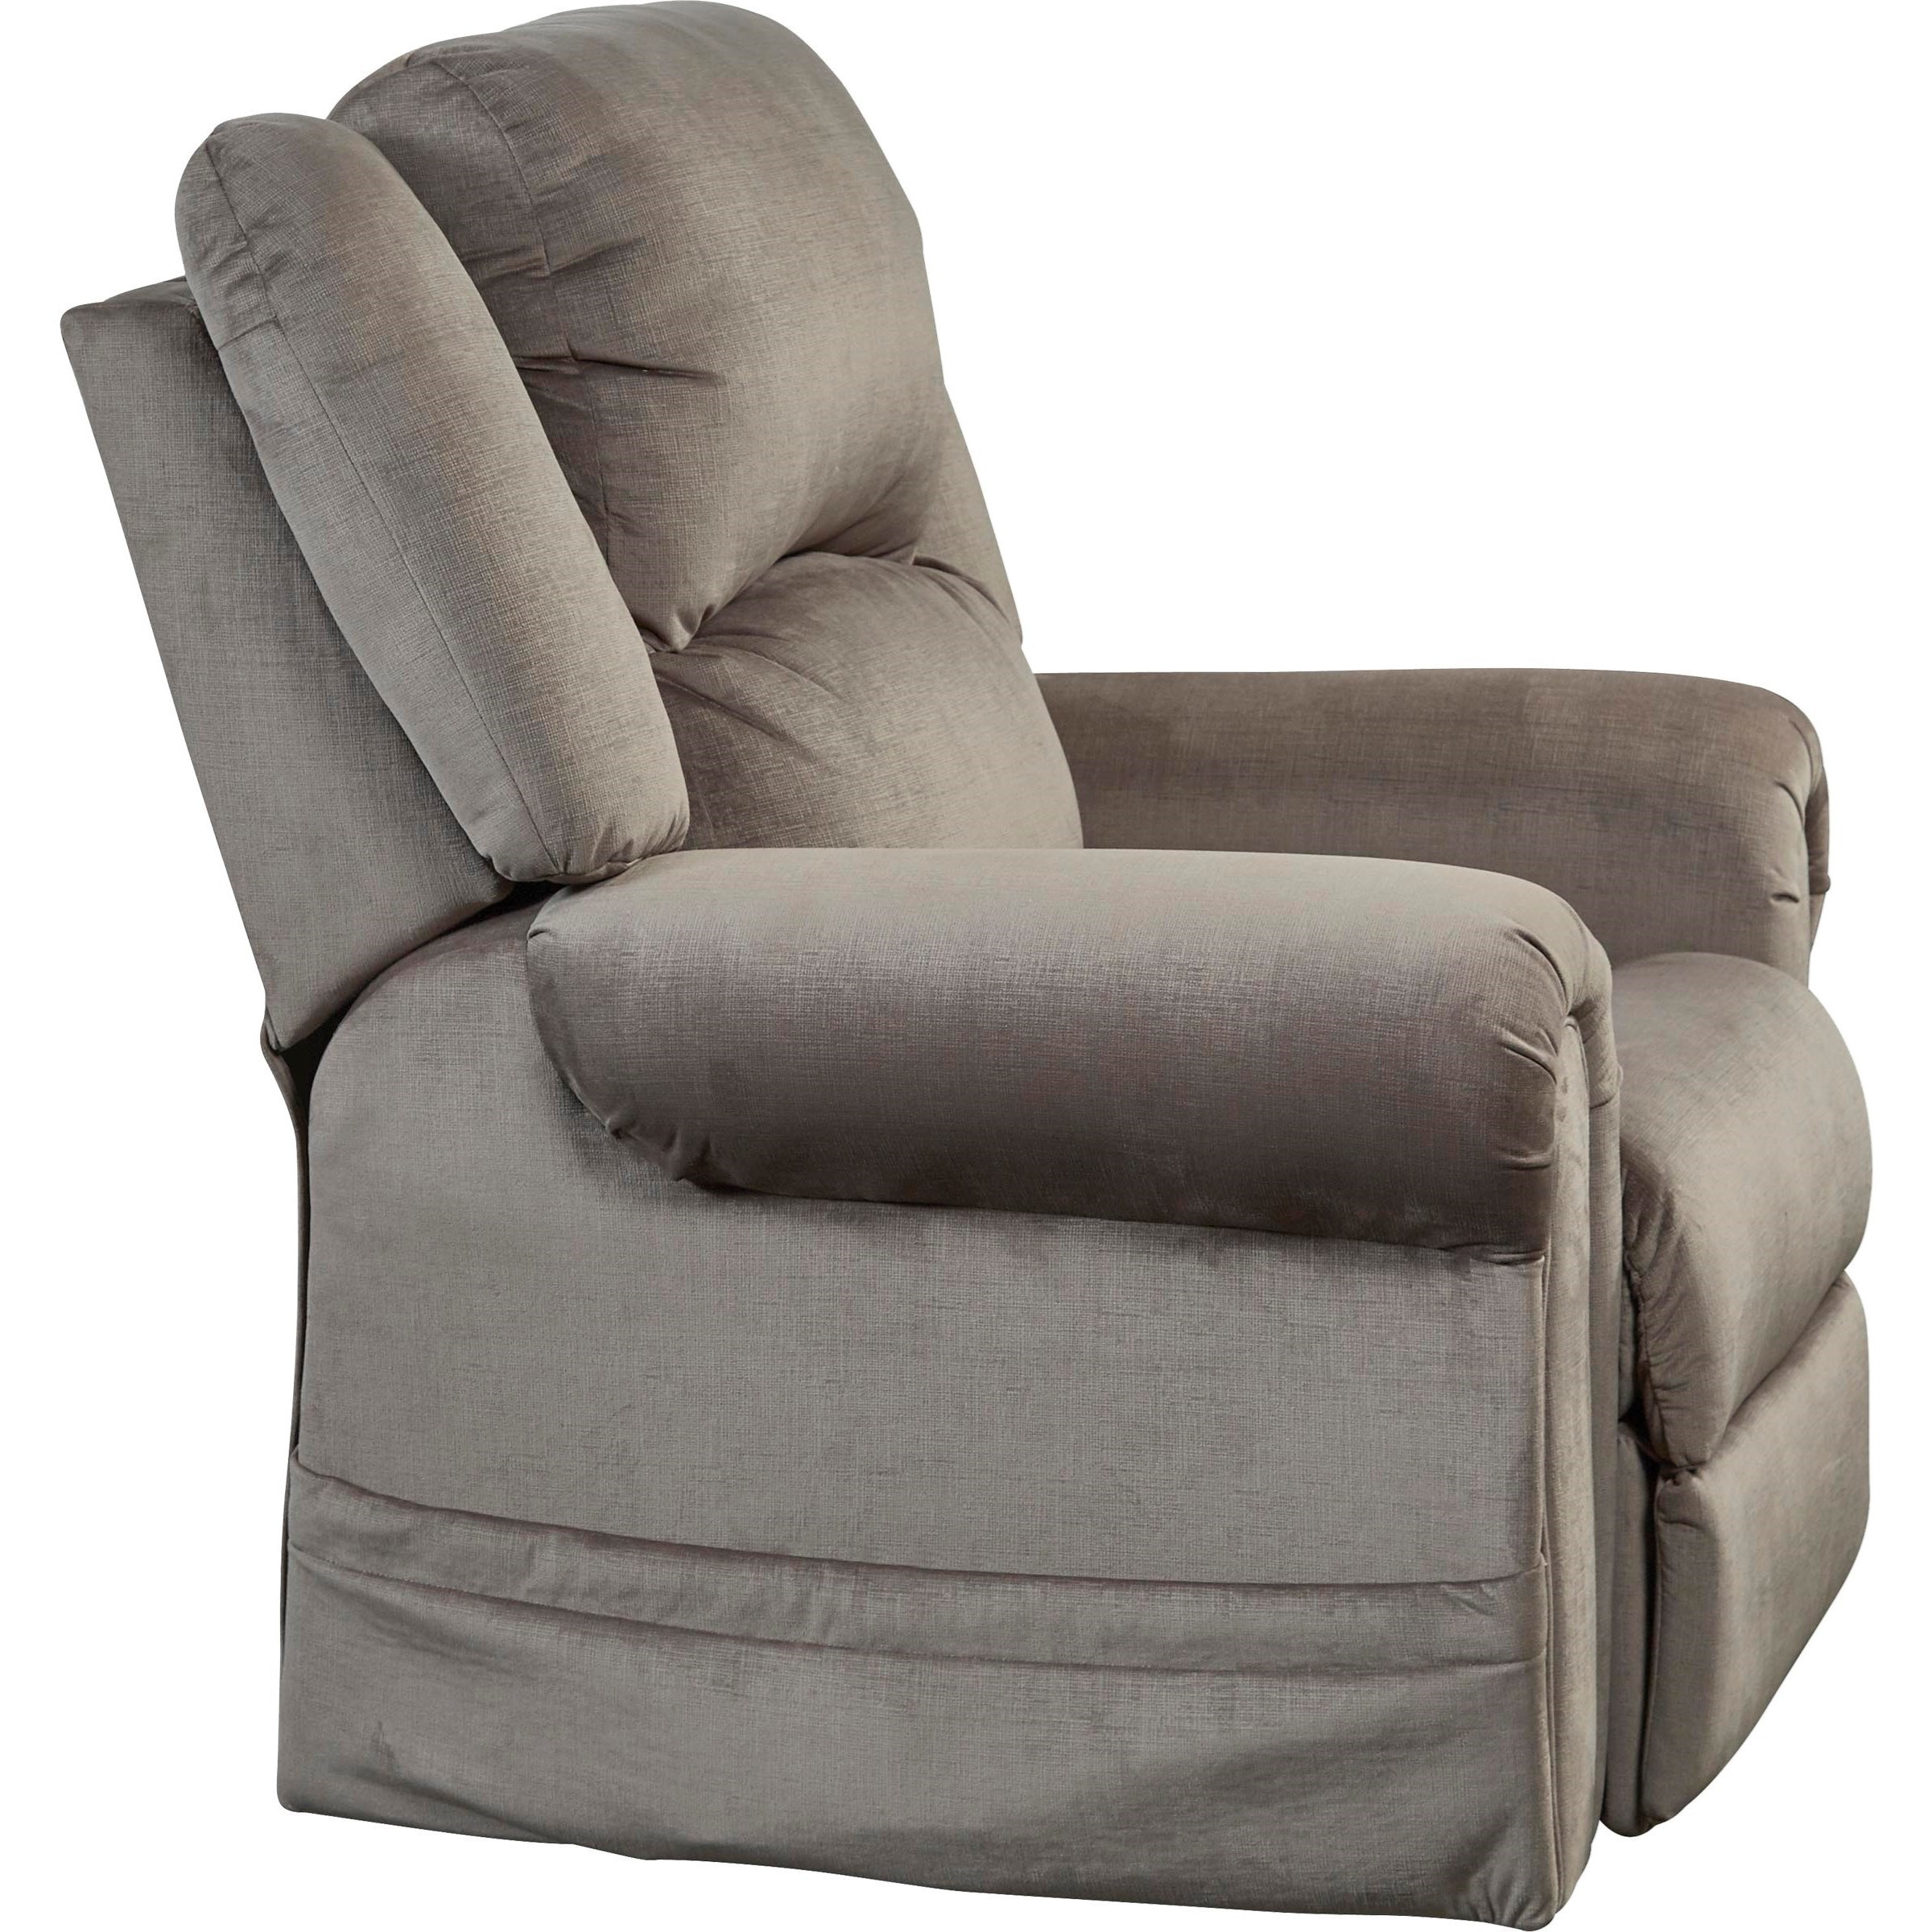 shown in pewter - Catnapper Recliners